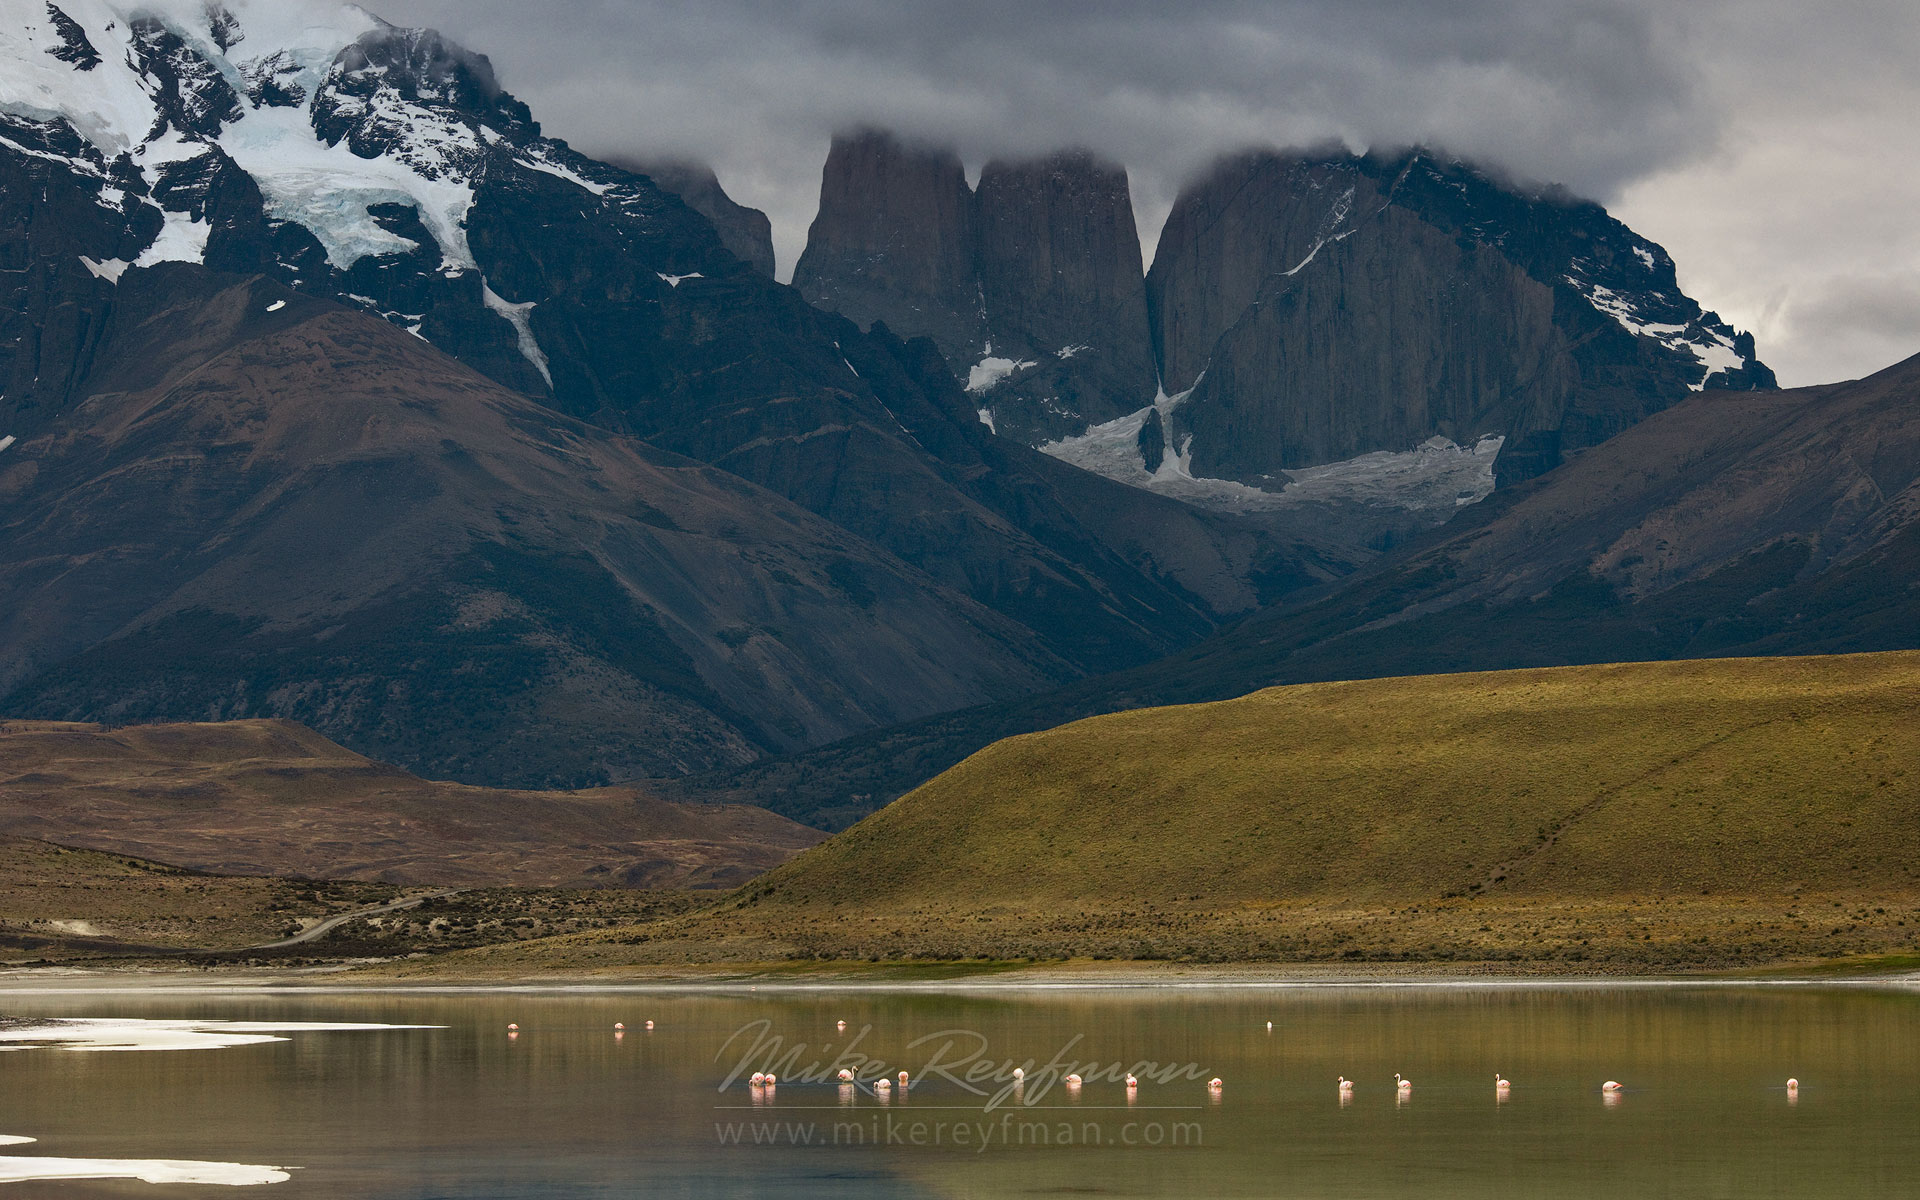 Flamingos on Laguna Amarga. Torres del Paine National Park, Ultima Esperanza Province, Magallanes and Antartica Chilena Region XII, Patagonia, Chile. - Torres-Del-Paine-National-Park-Patagonia-Chile - Mike Reyfman Photography